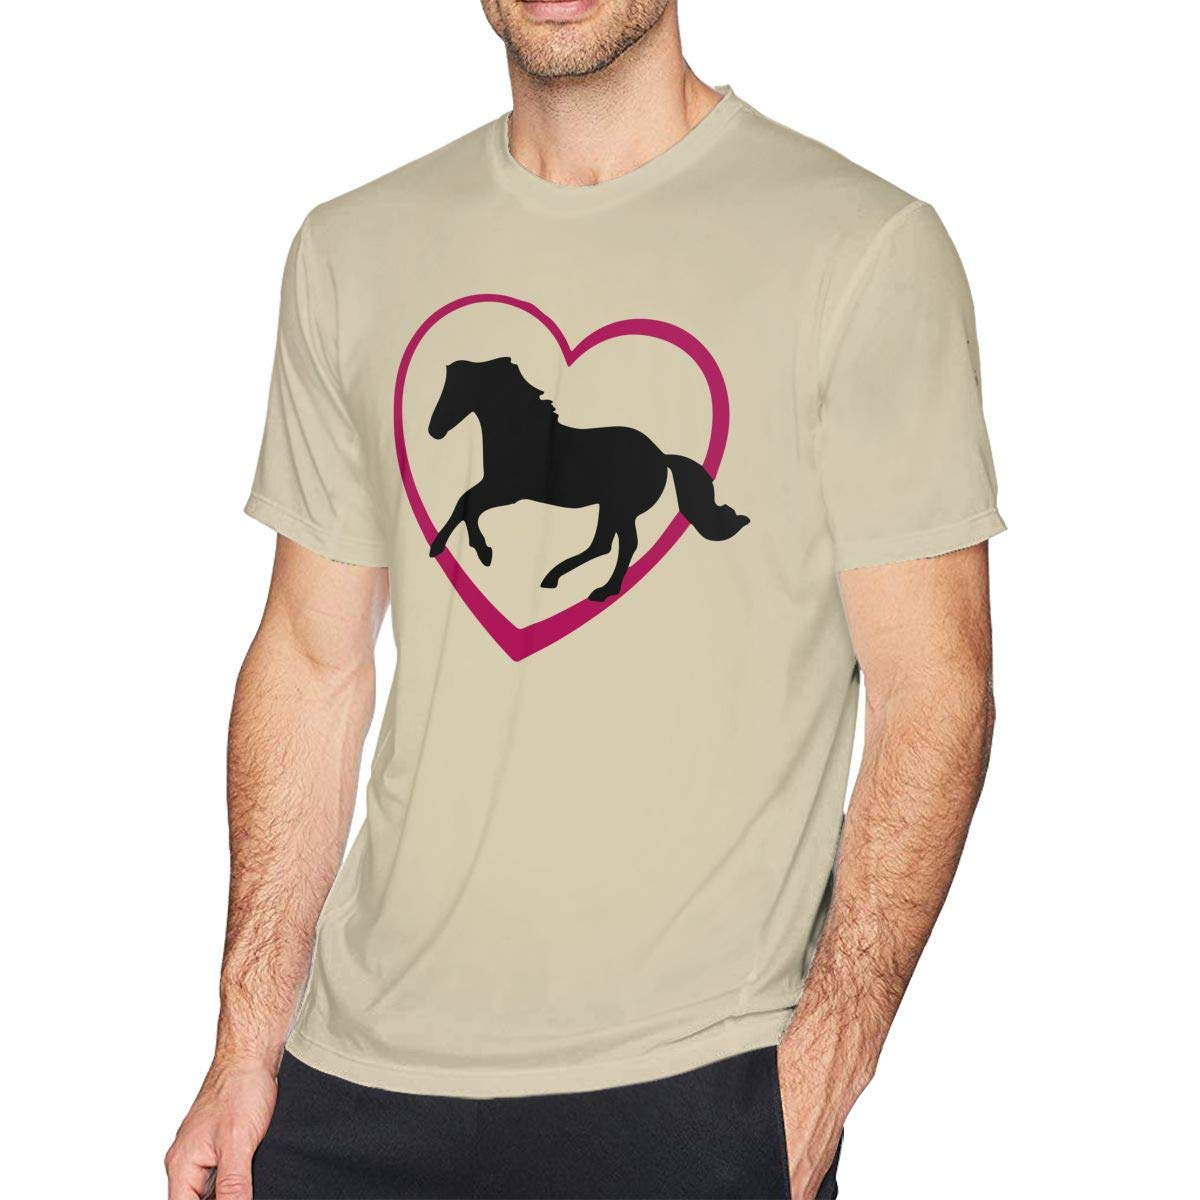 Horse Novelty T-Shirt Adult Soft Short Sleeves T-Shirts T Shirts Plus Size